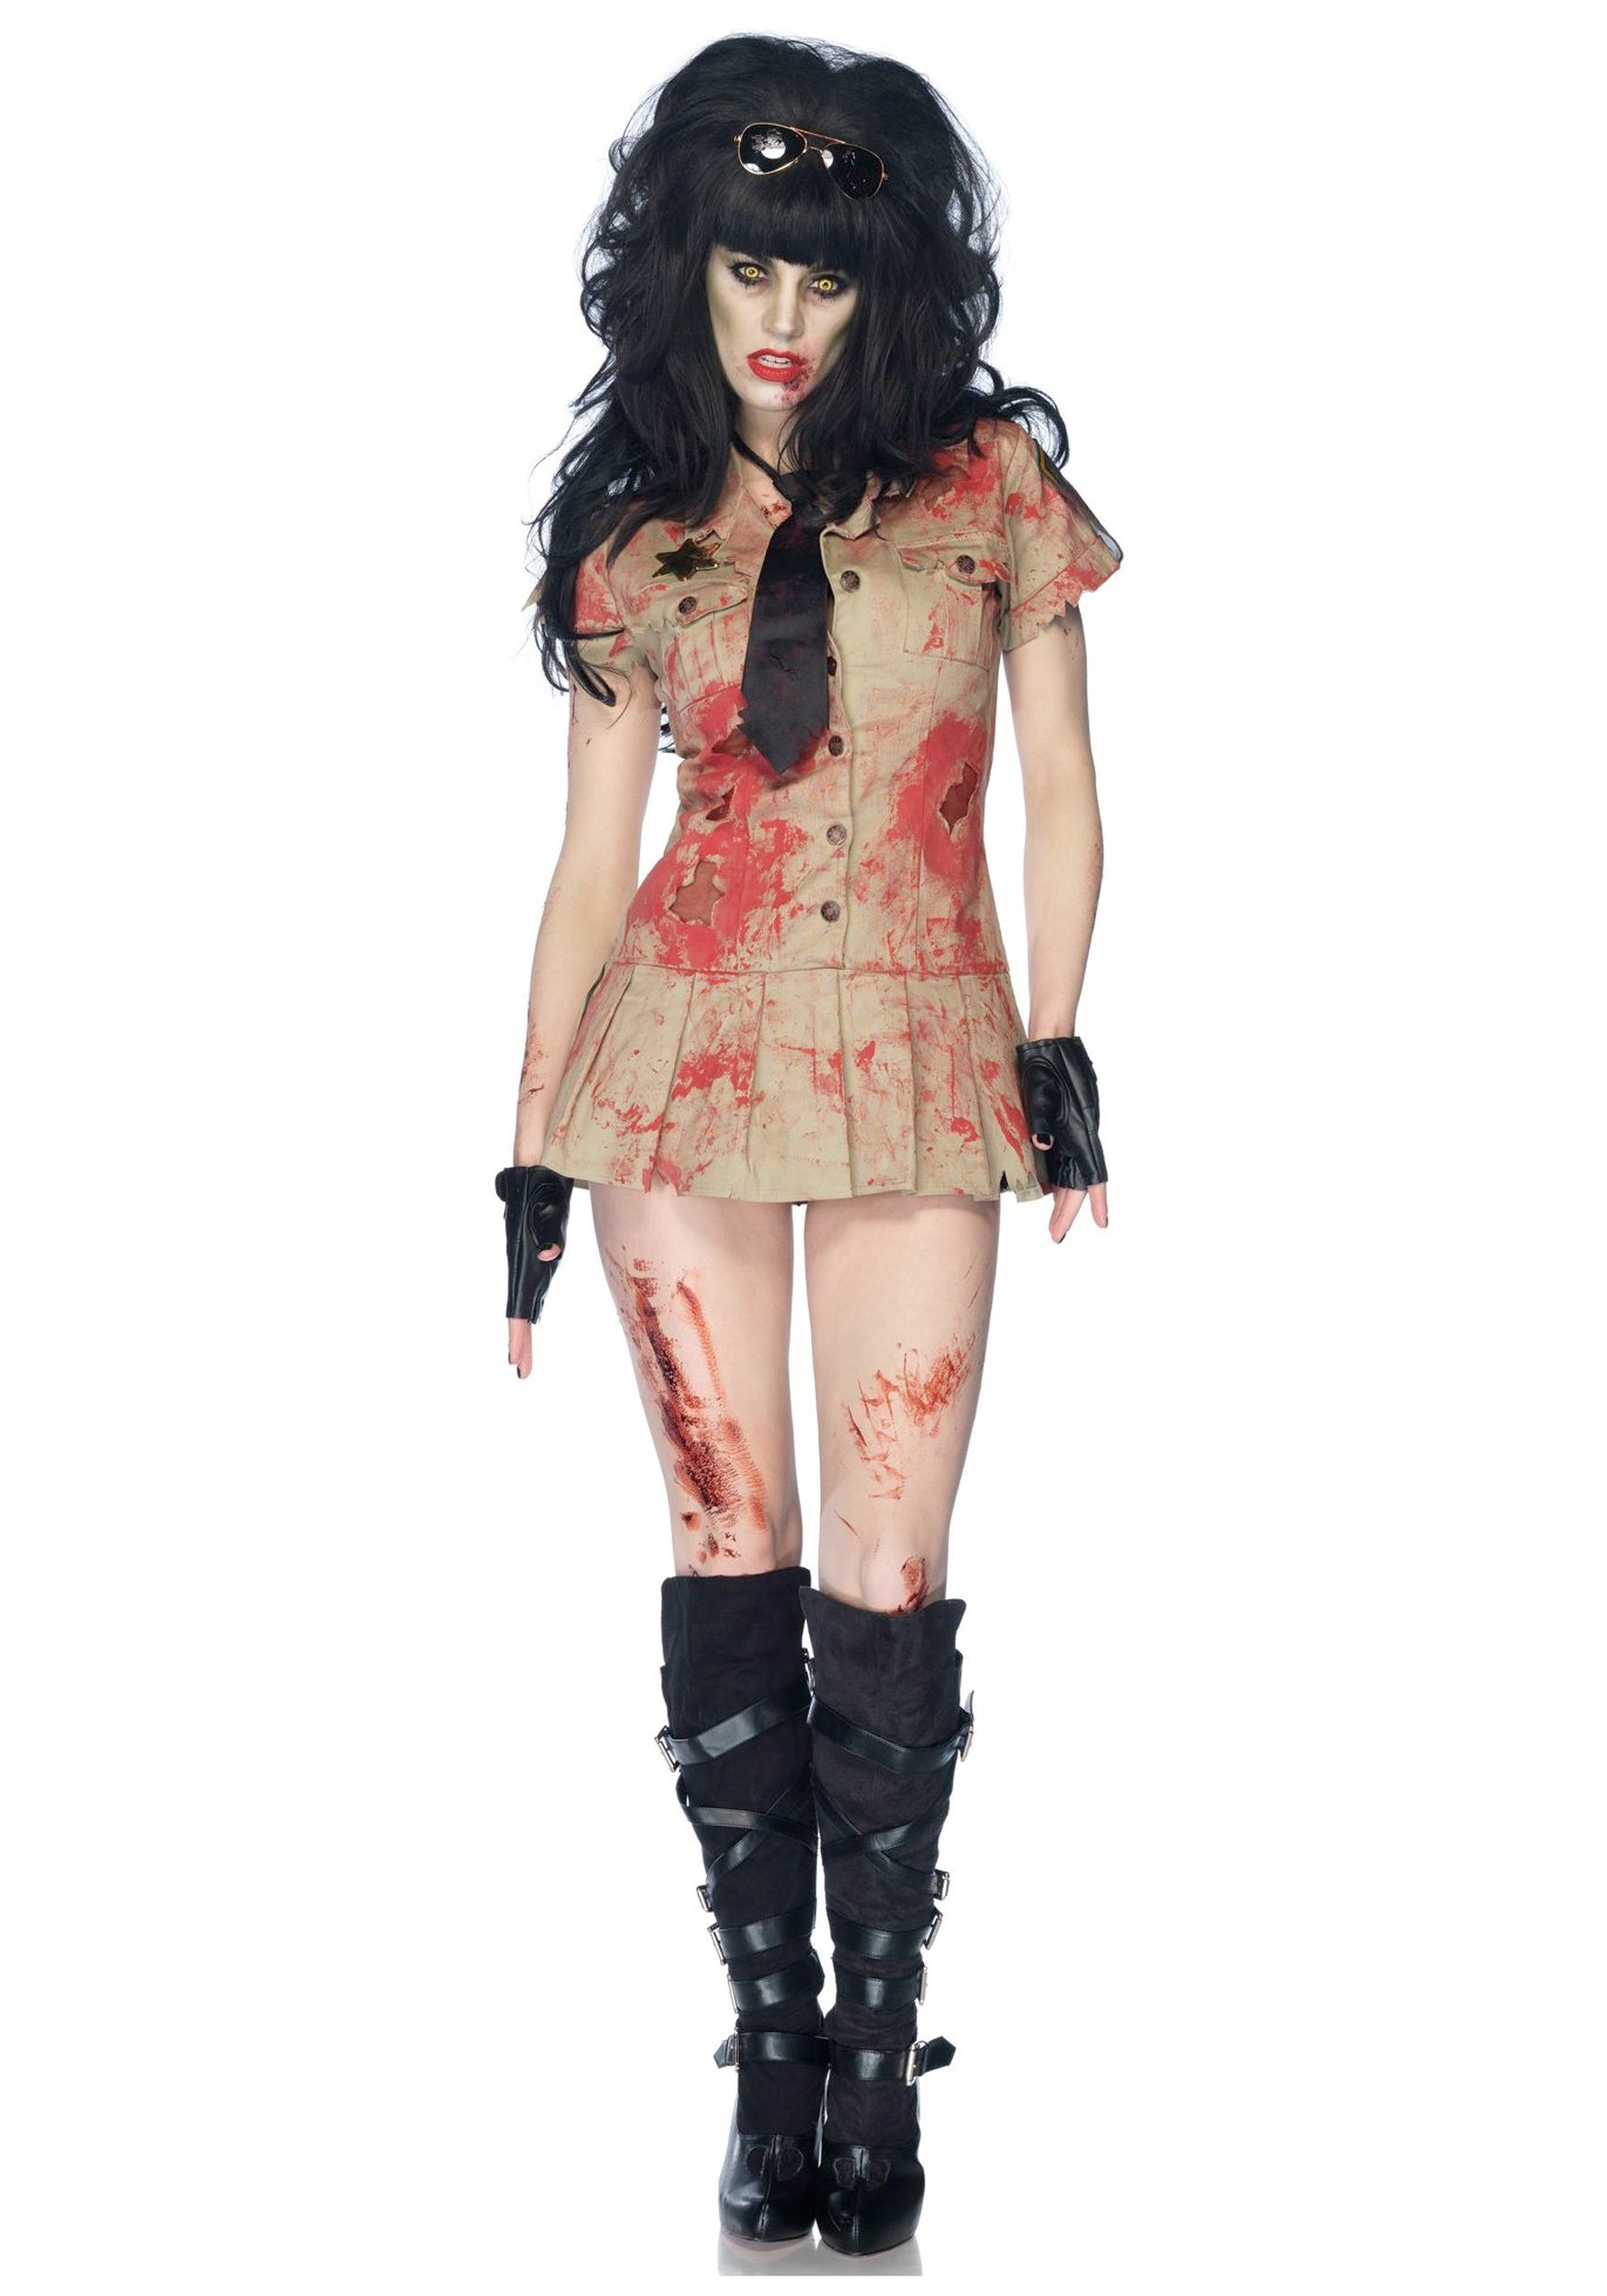 Scary Halloween Costumes for Women  272f3c6939